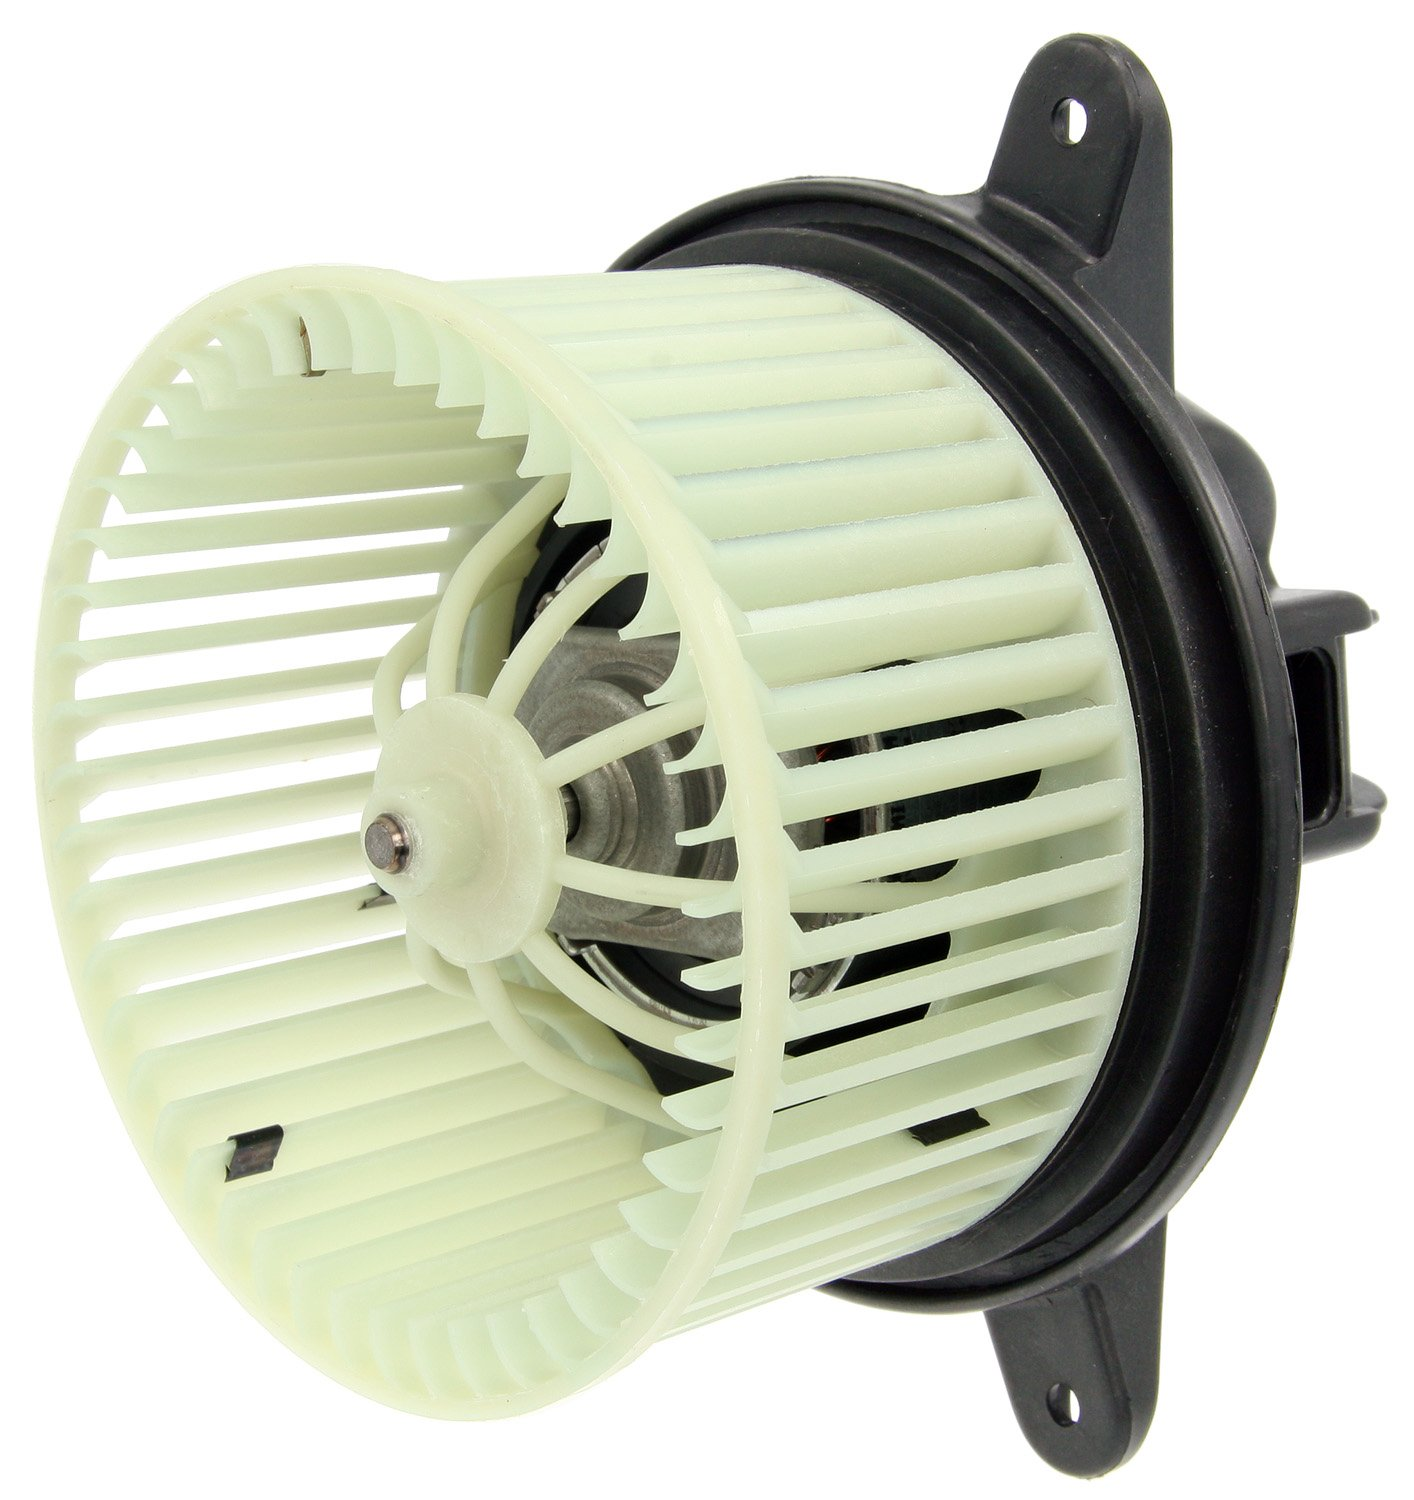 Four Seasons/Trumark 75712 Blower Motor with Wheel